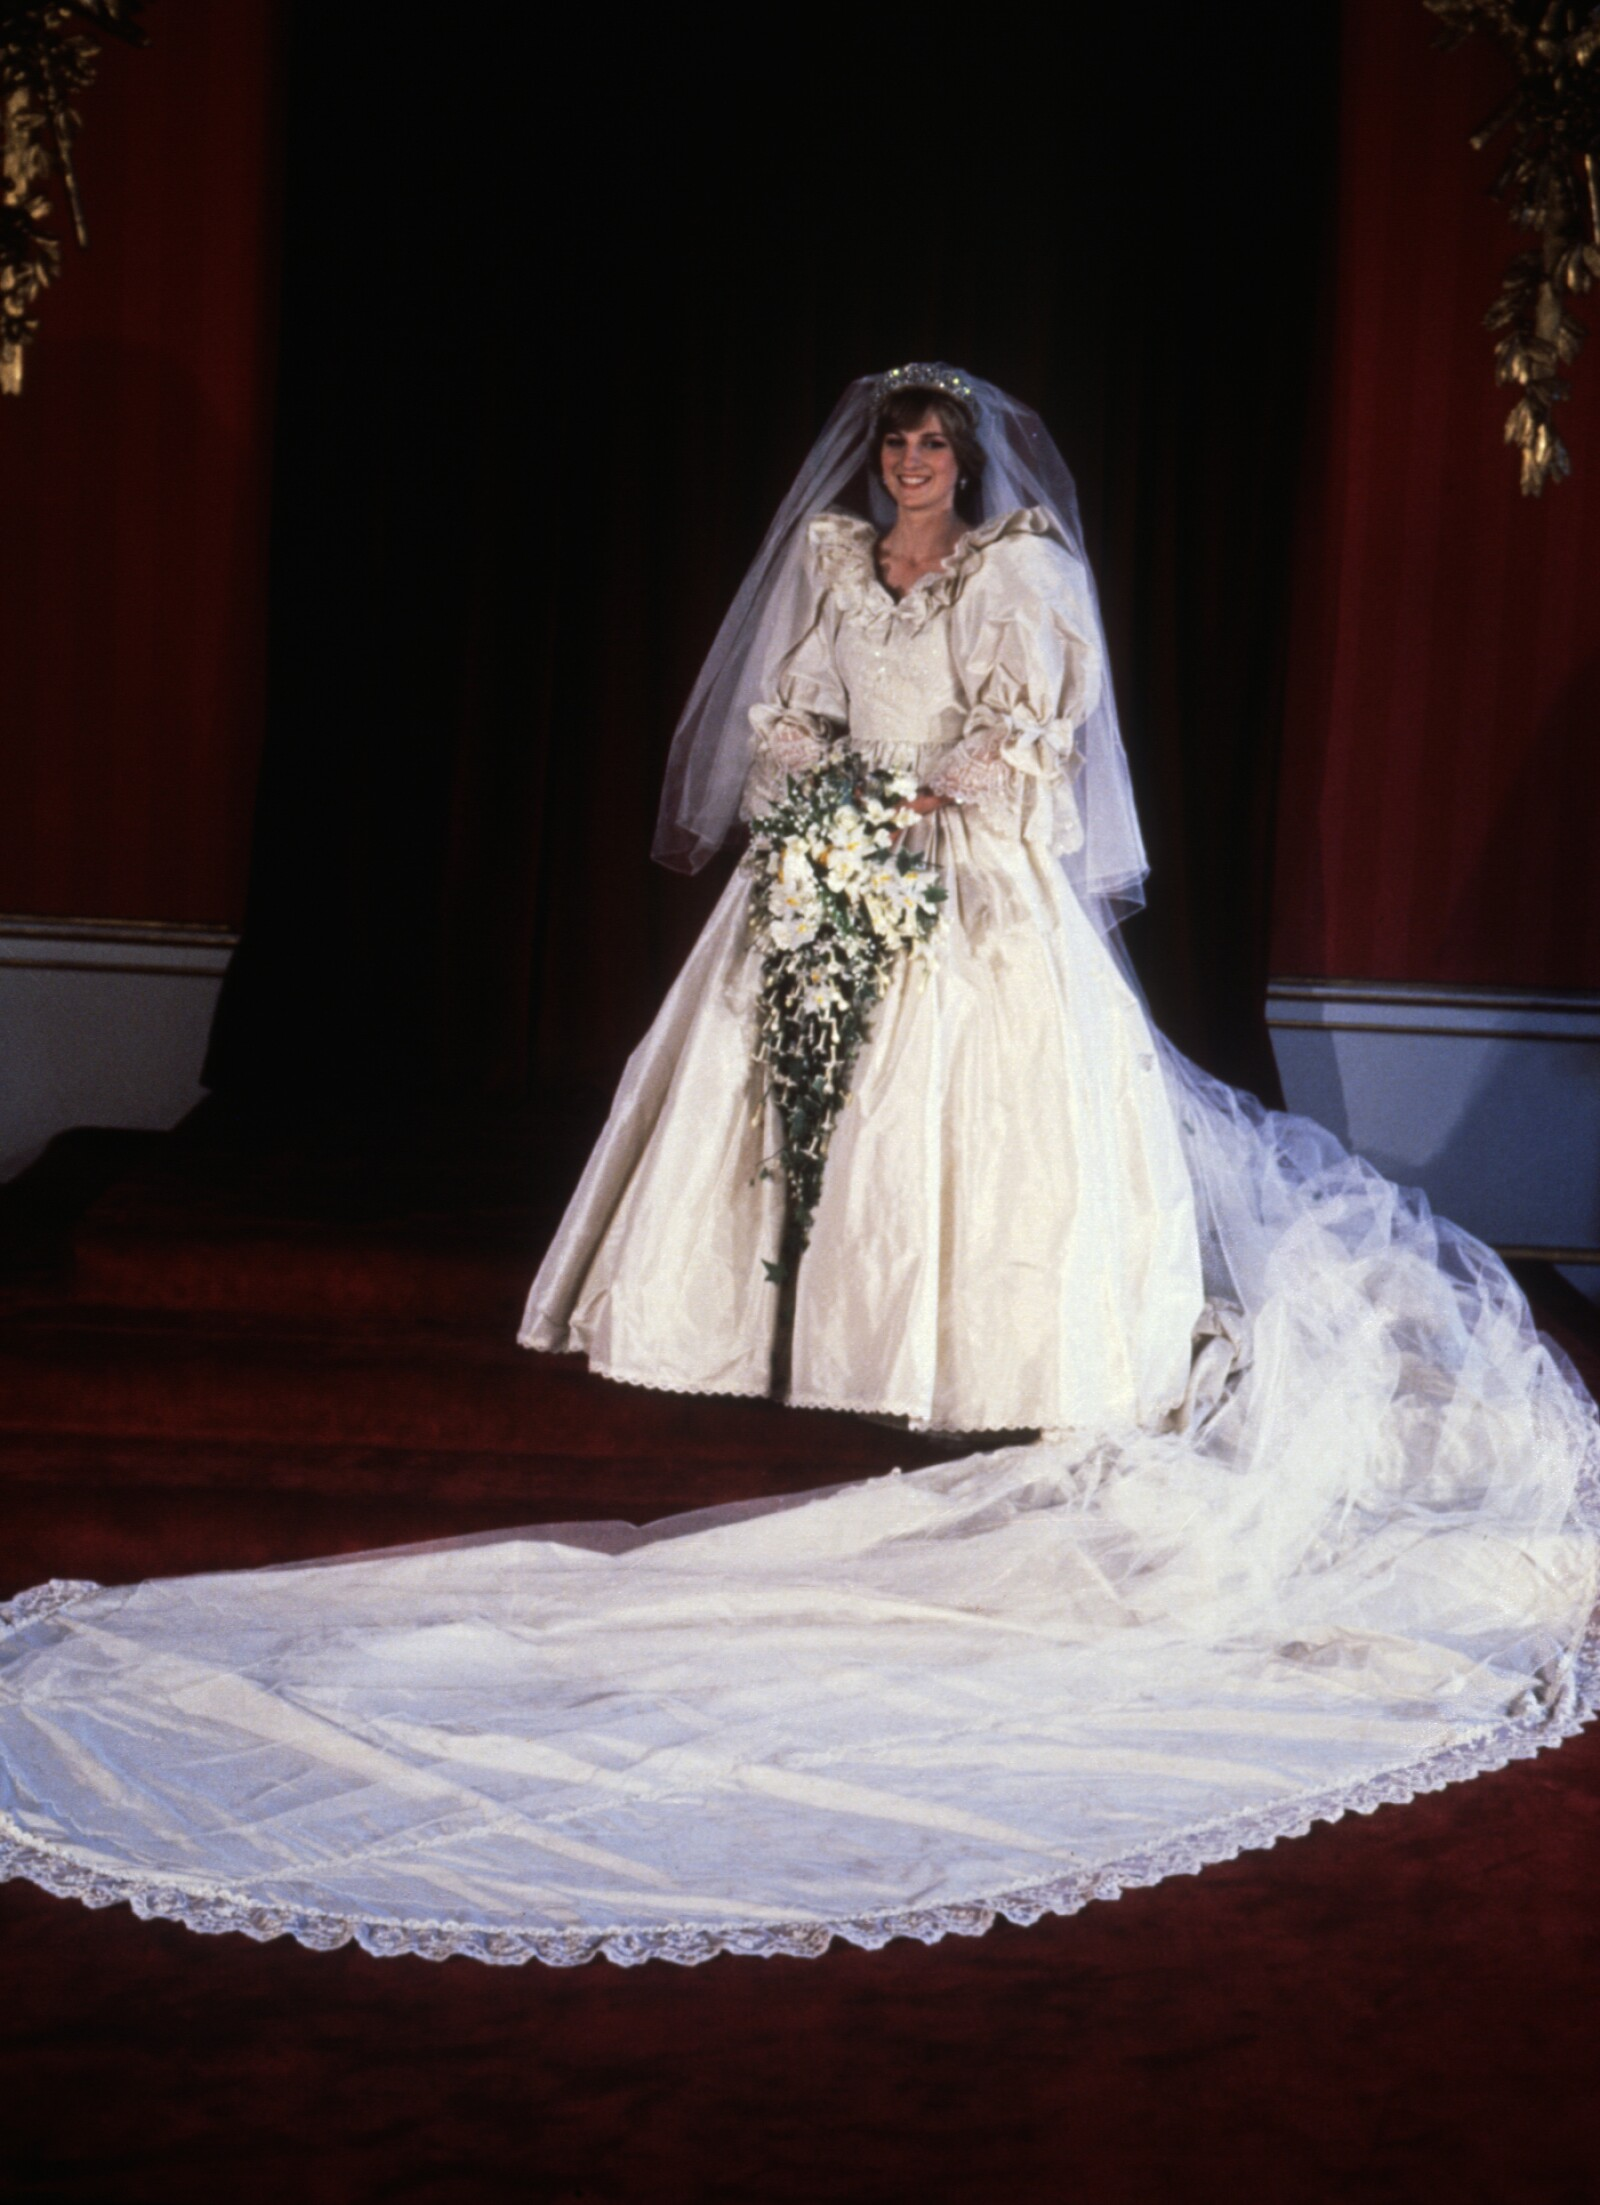 Princess Diana as a Bride